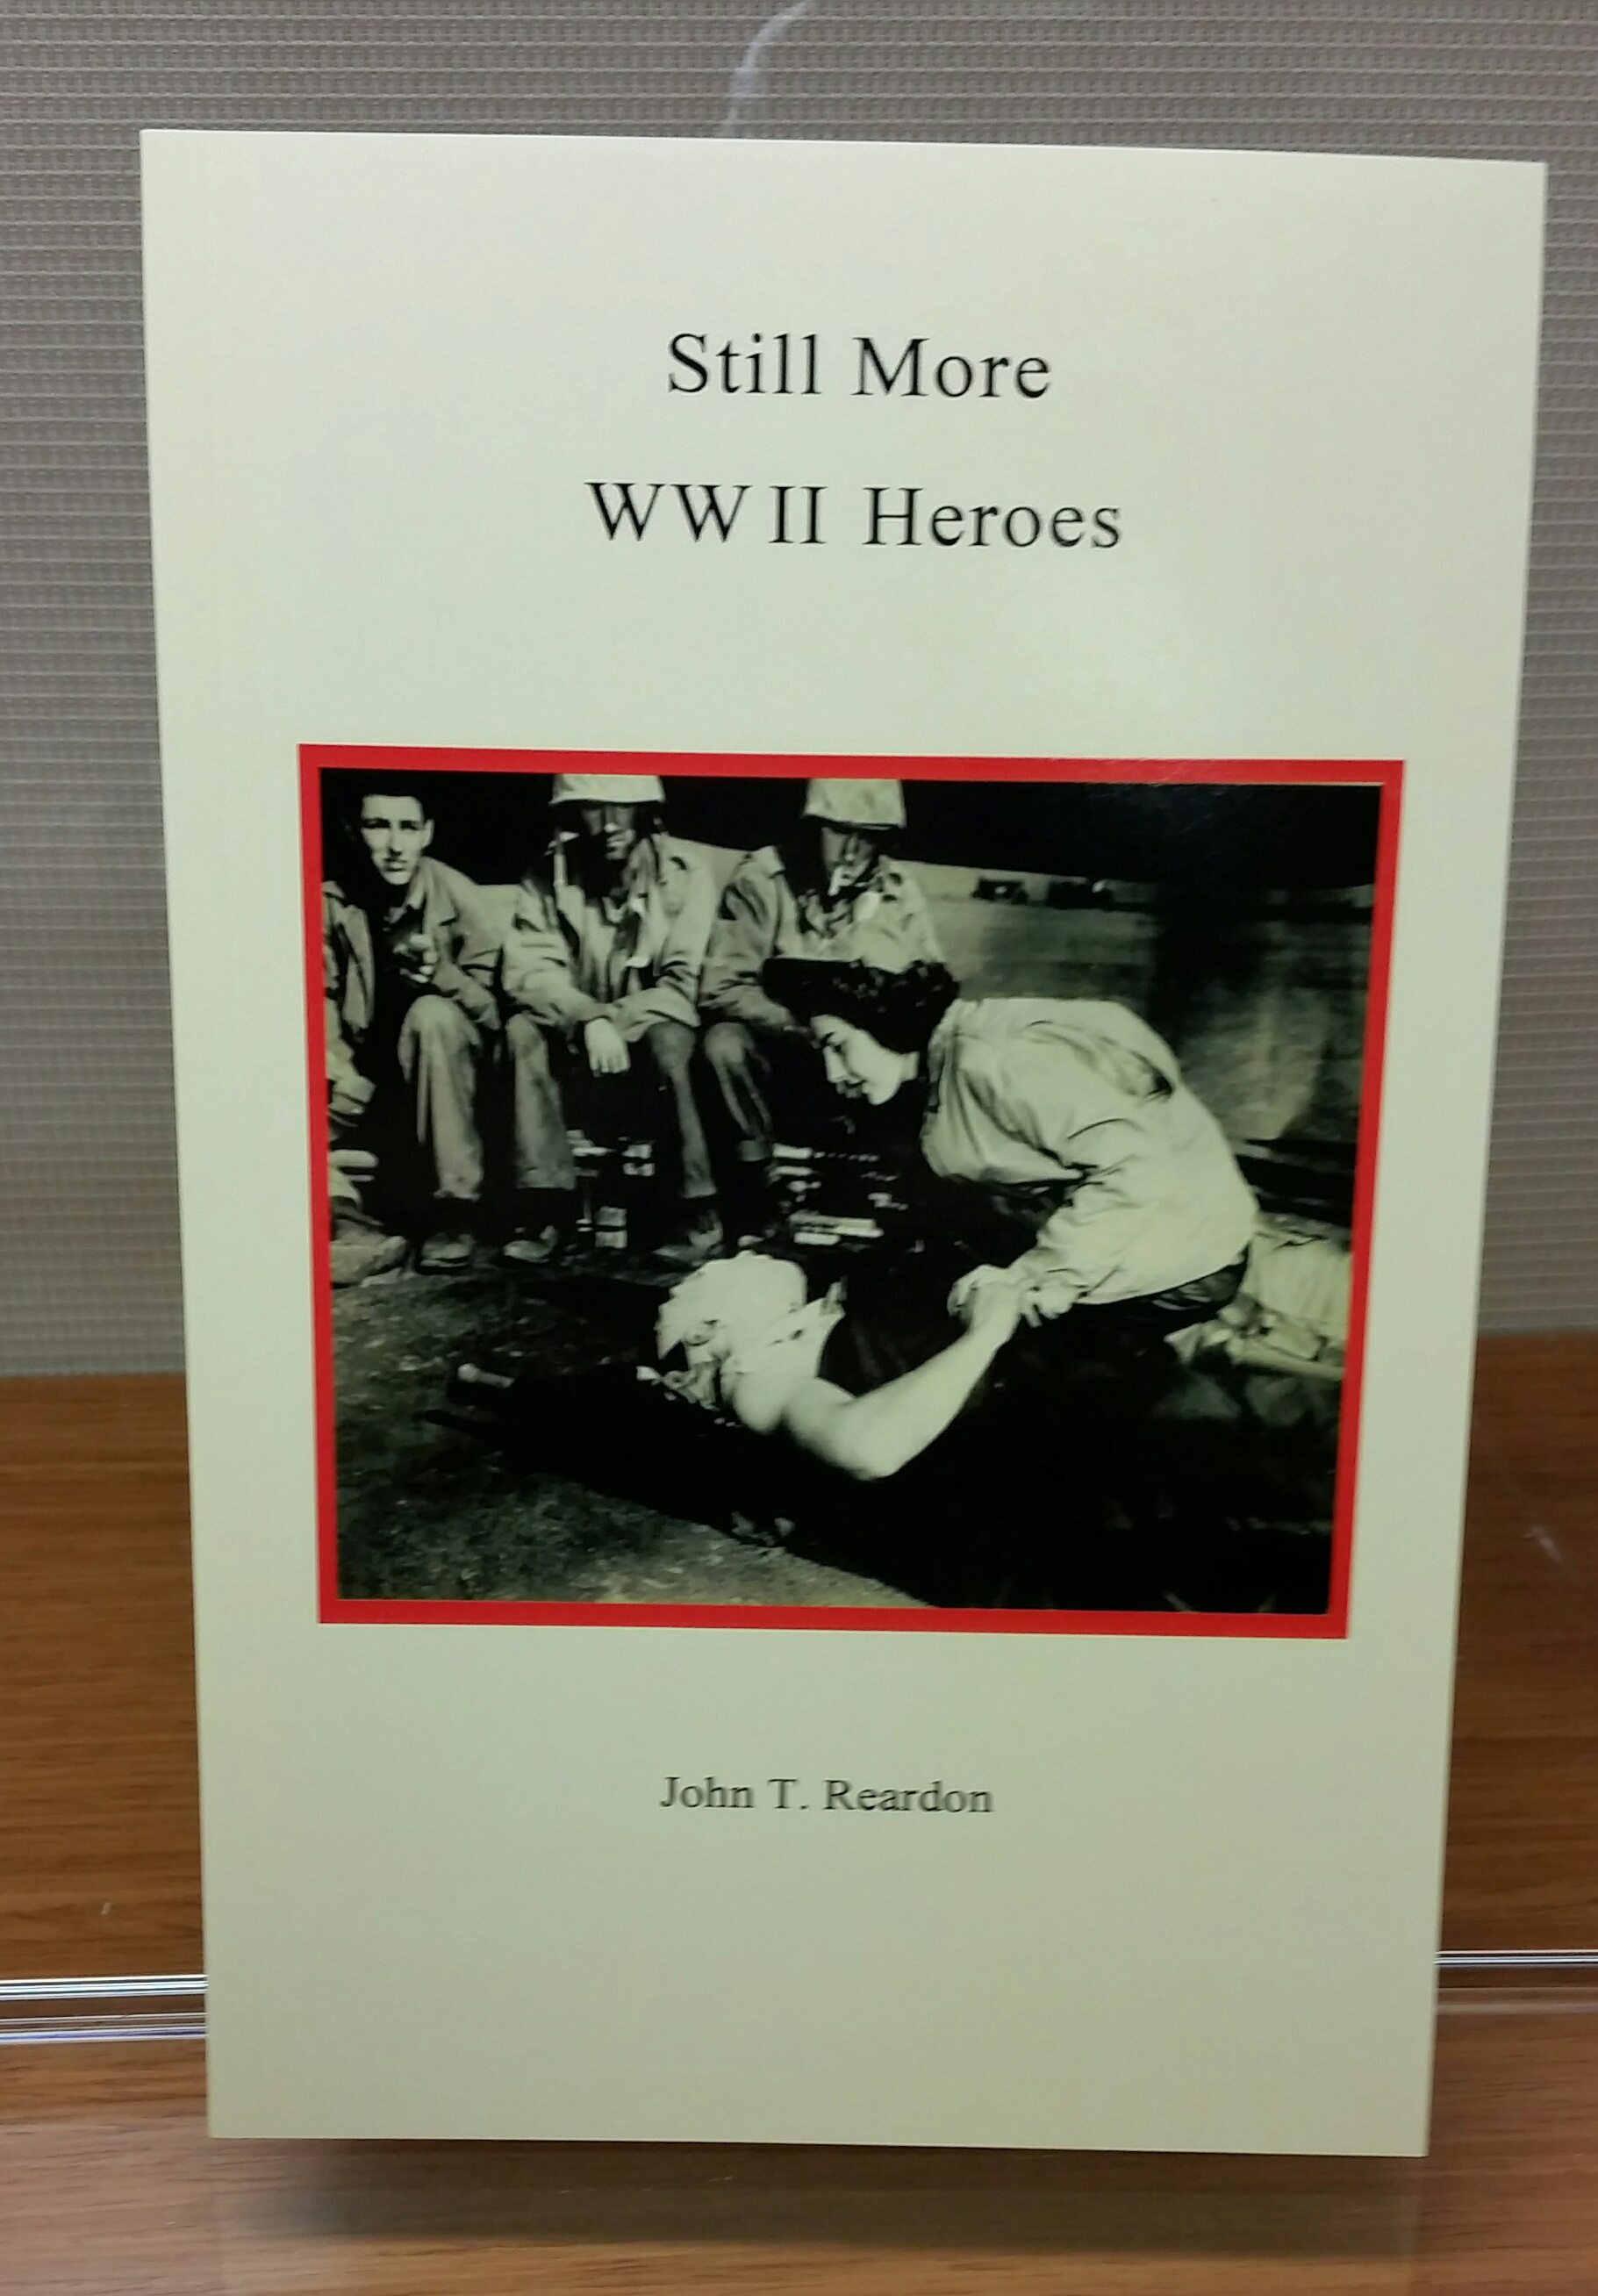 Still More WW II Heroes, by John T. Reardon, 2015, 134 pp. Prices reflect the cost of the book PLUS S&H fee of $3.00.